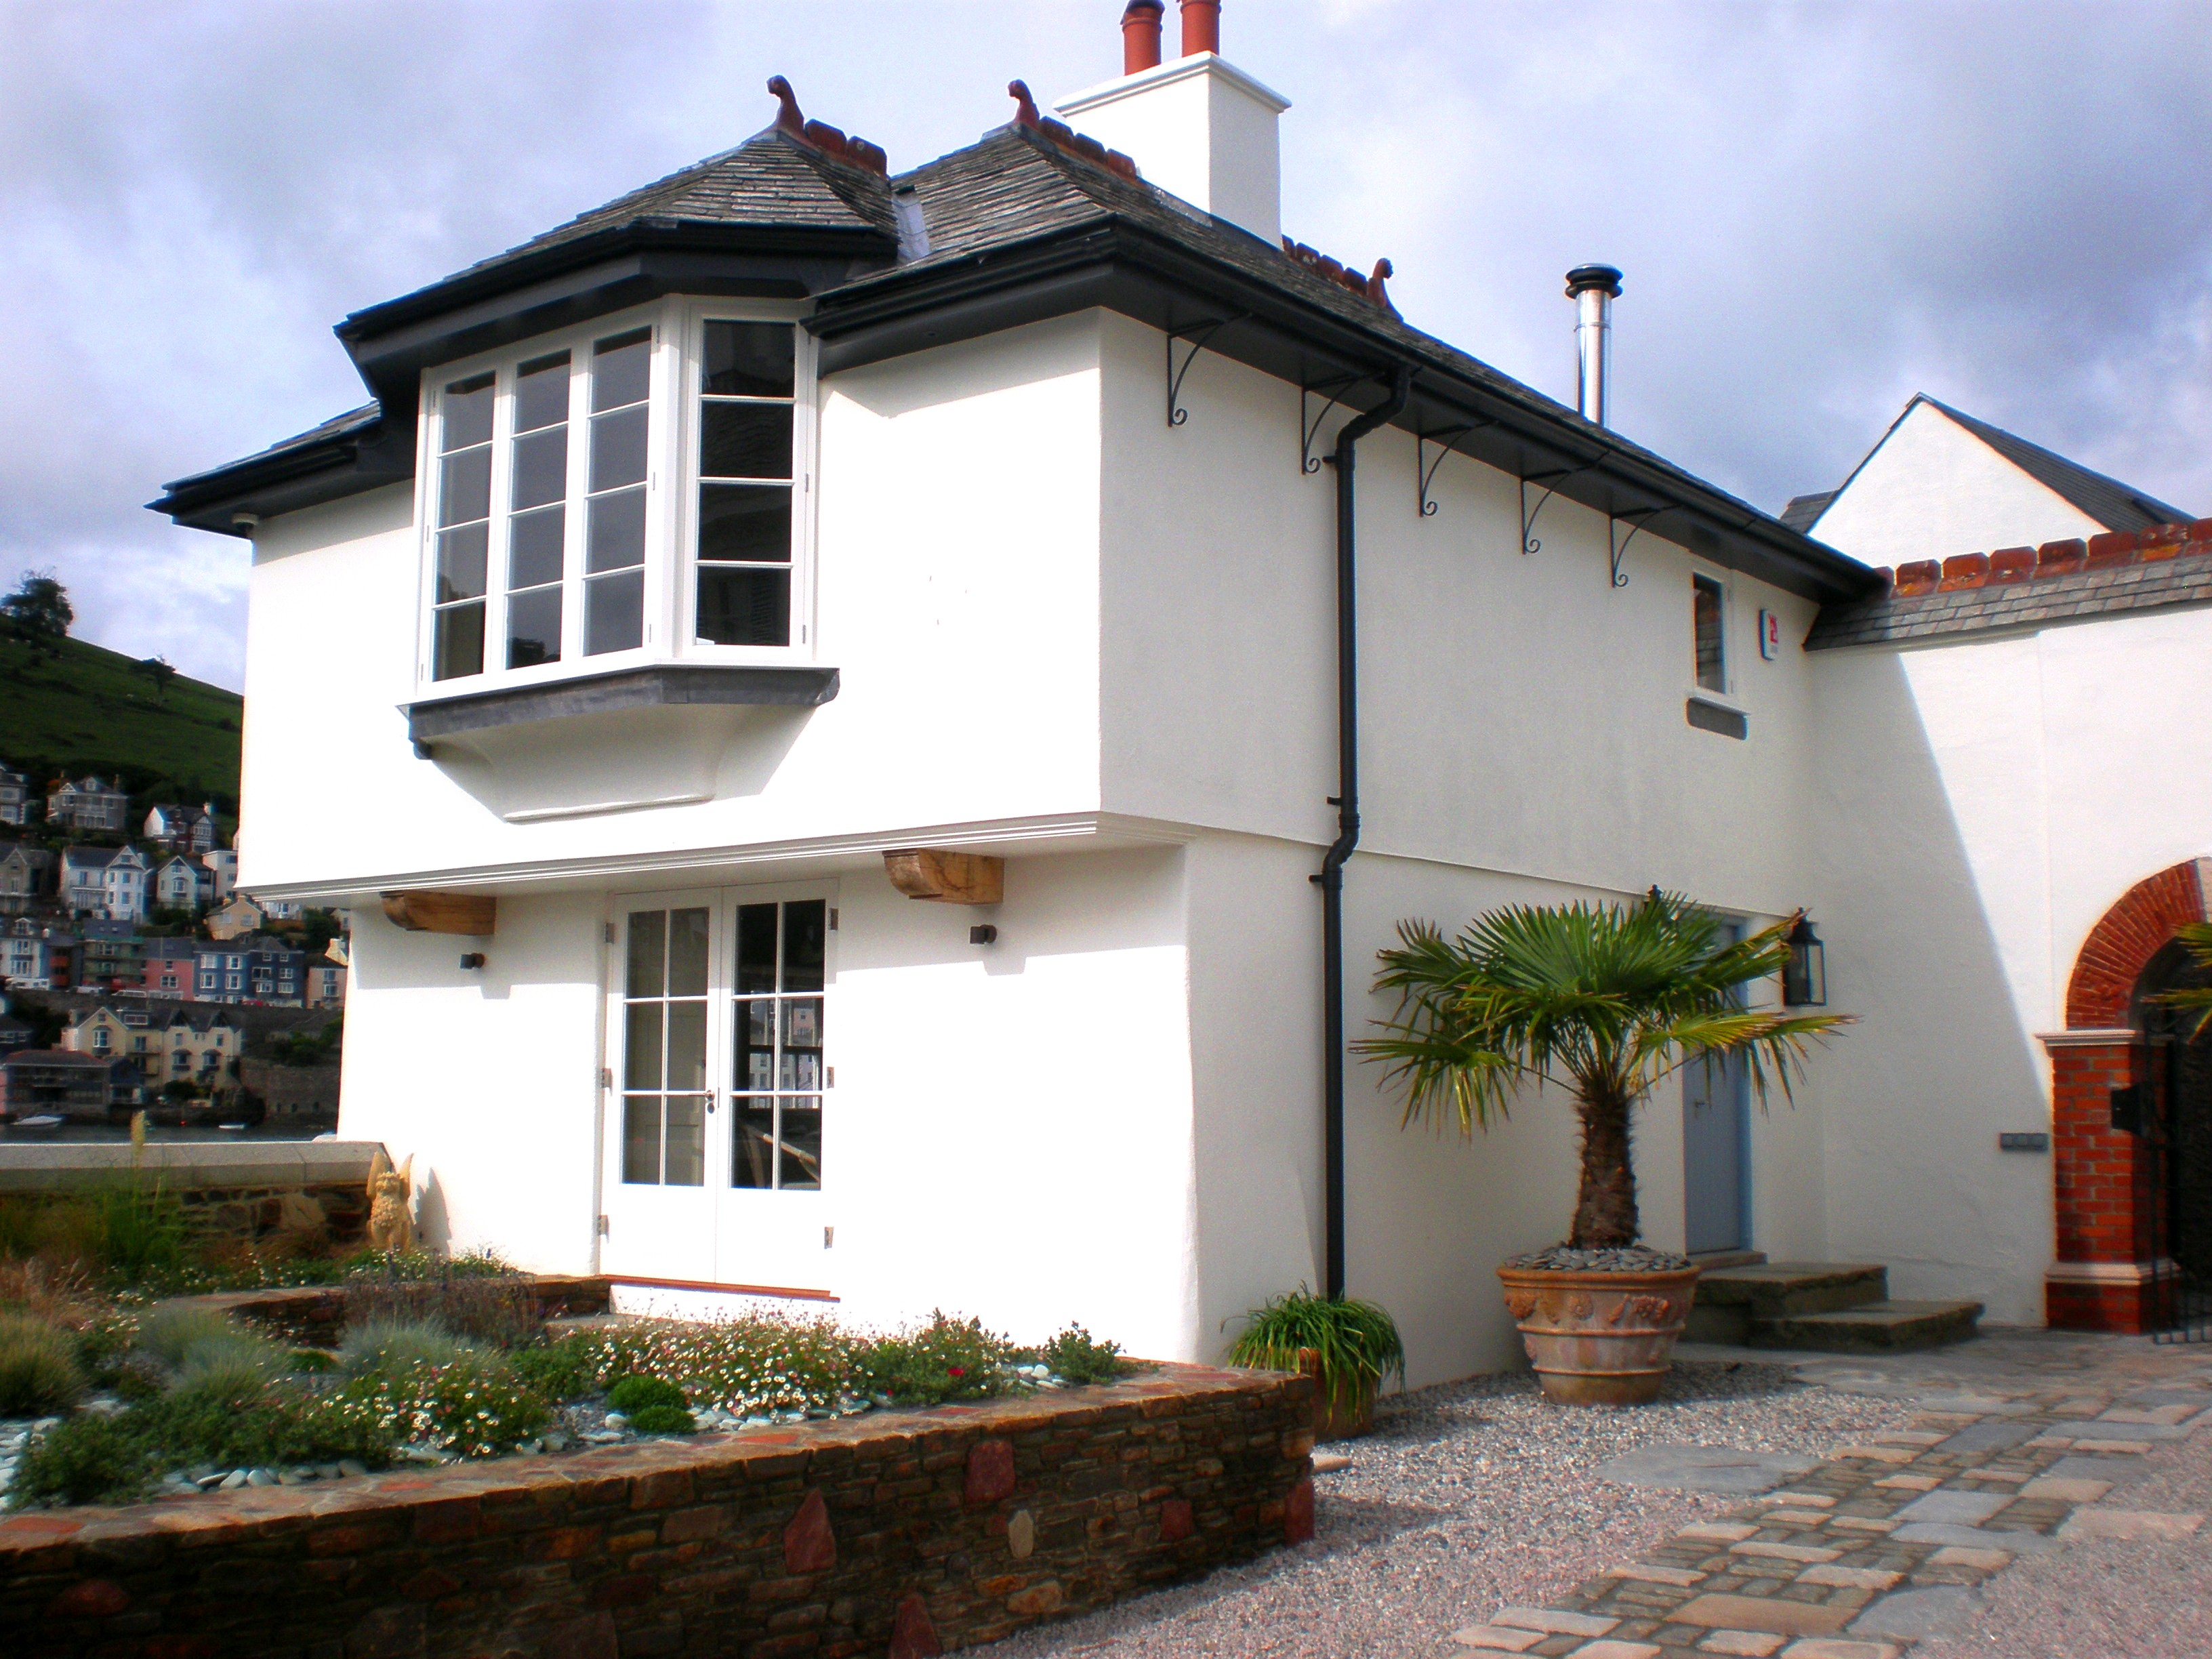 Extensions and alterations to a Grade II listed riverside property